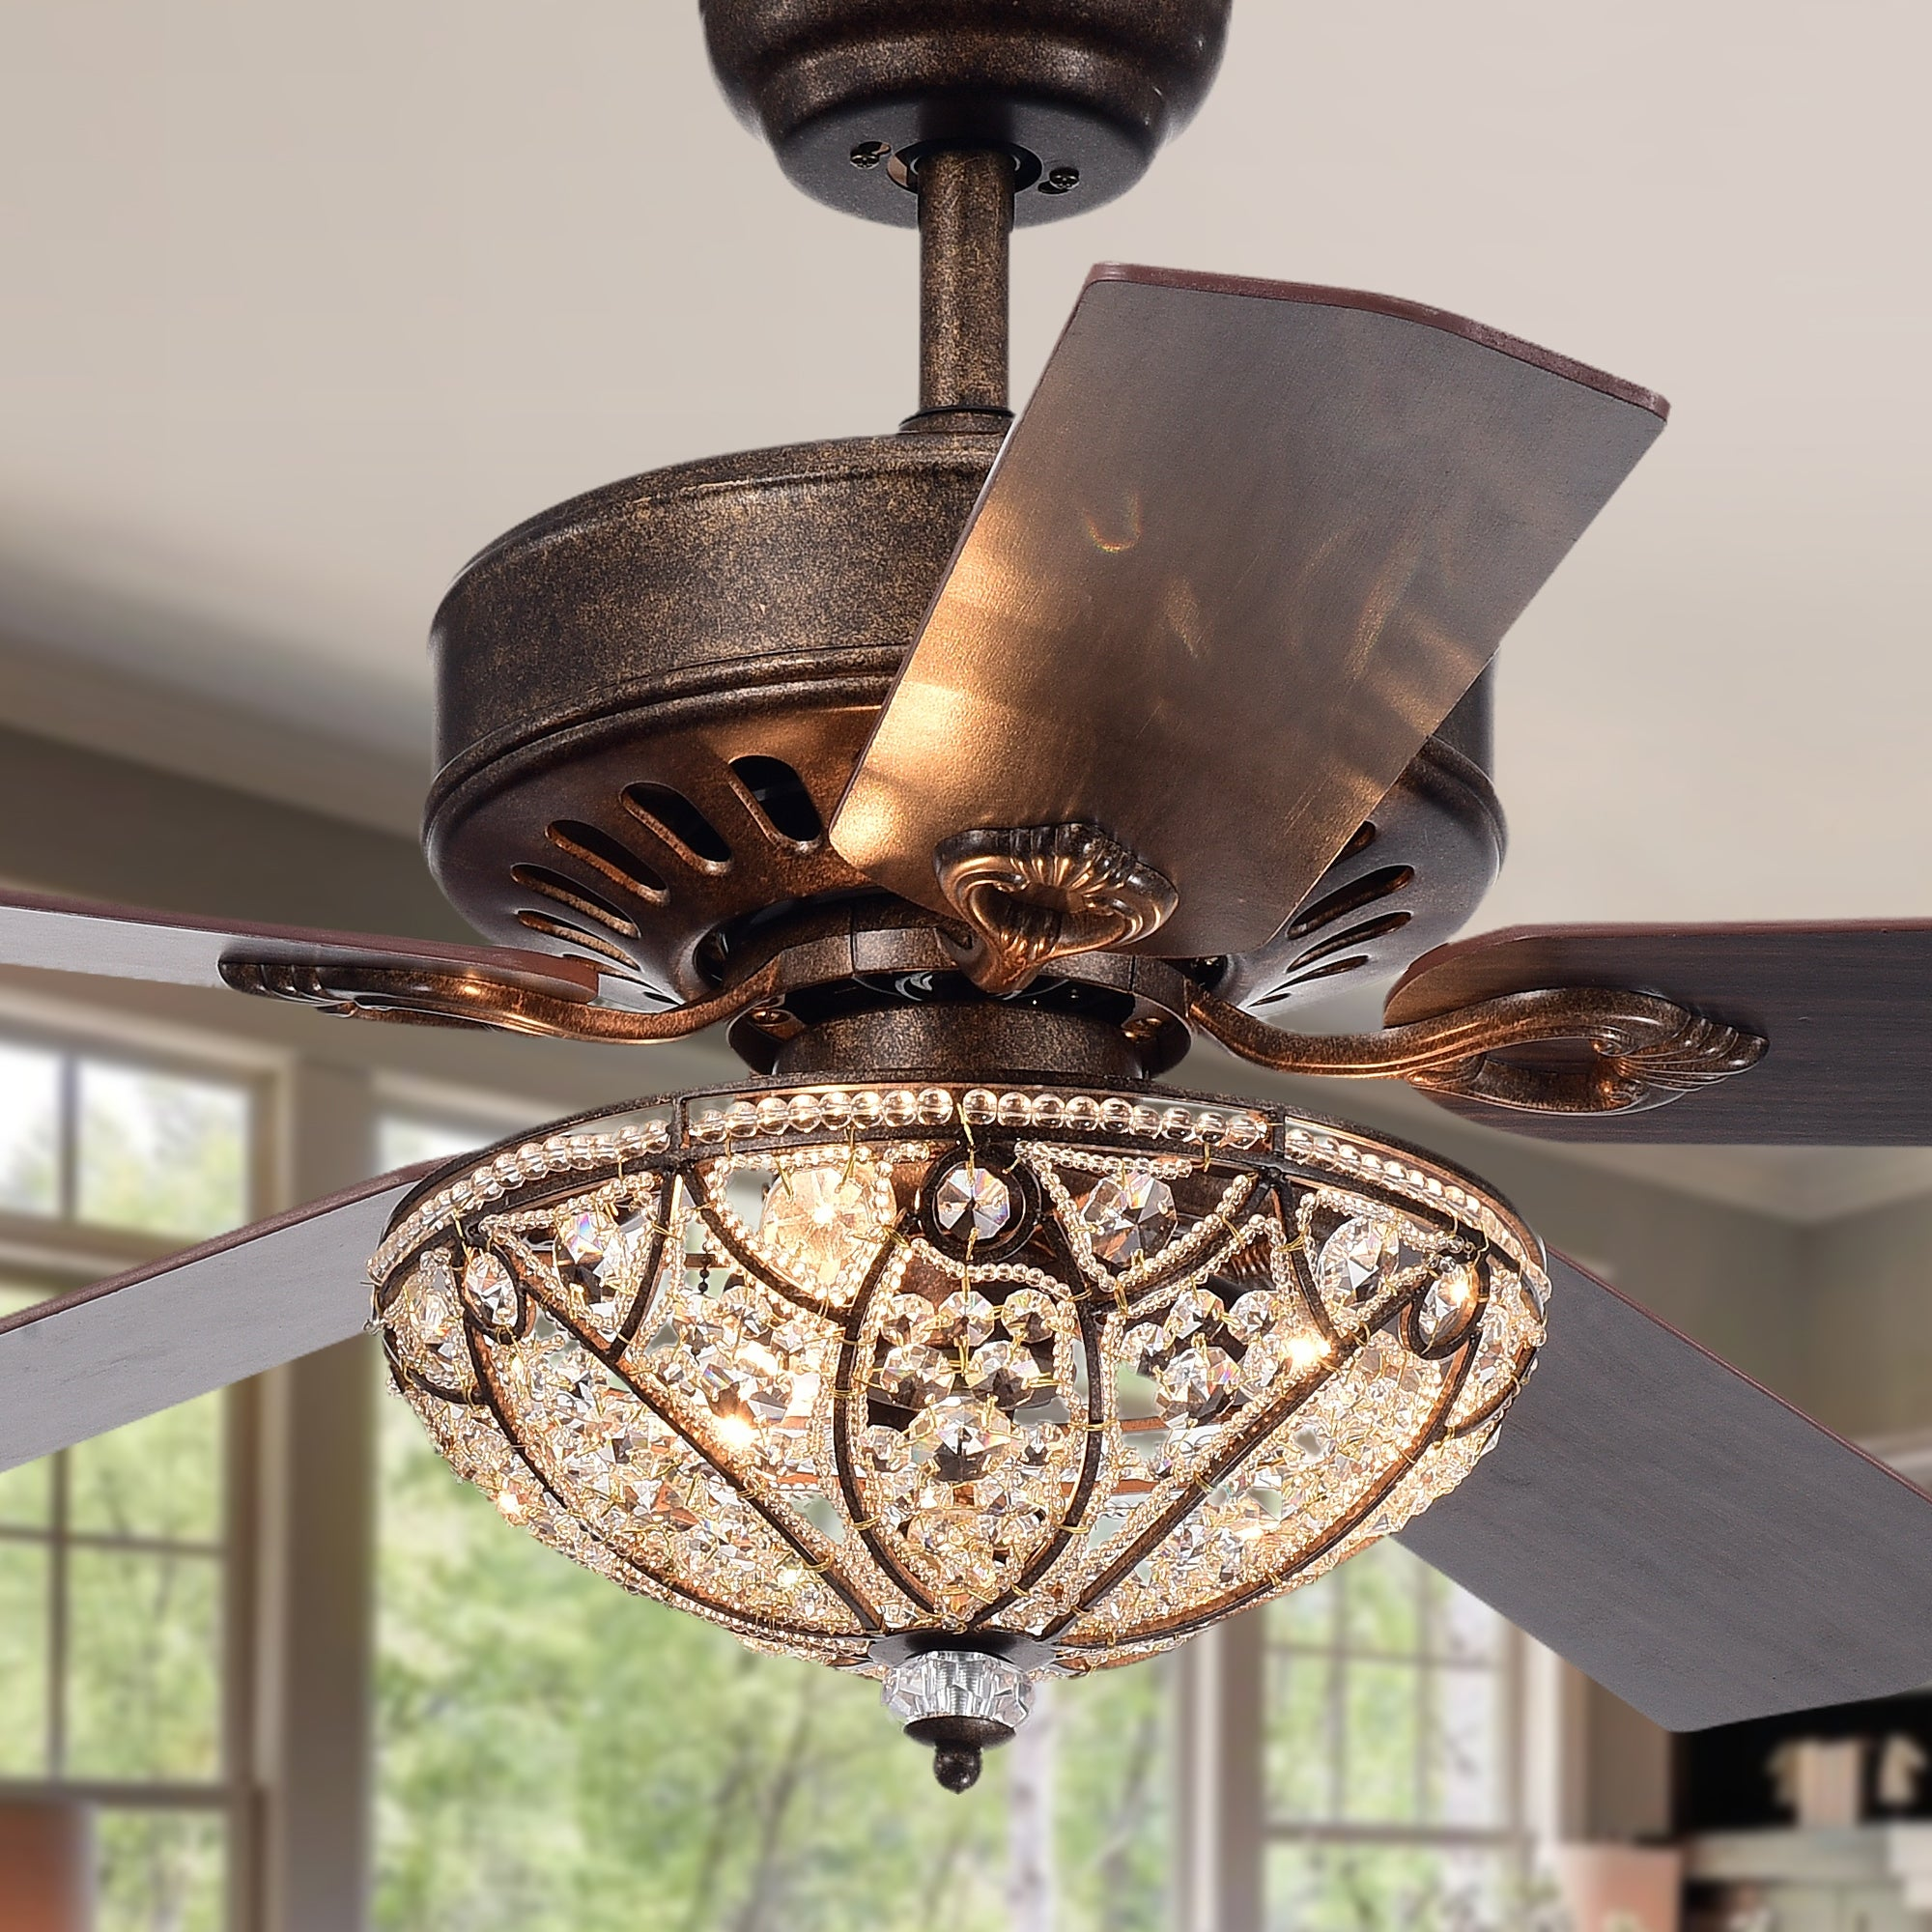 Gliska Rustic Bronze 5 Blade Lighted Ceiling Fan With Crystal Shade On Sale Overstock 22966550